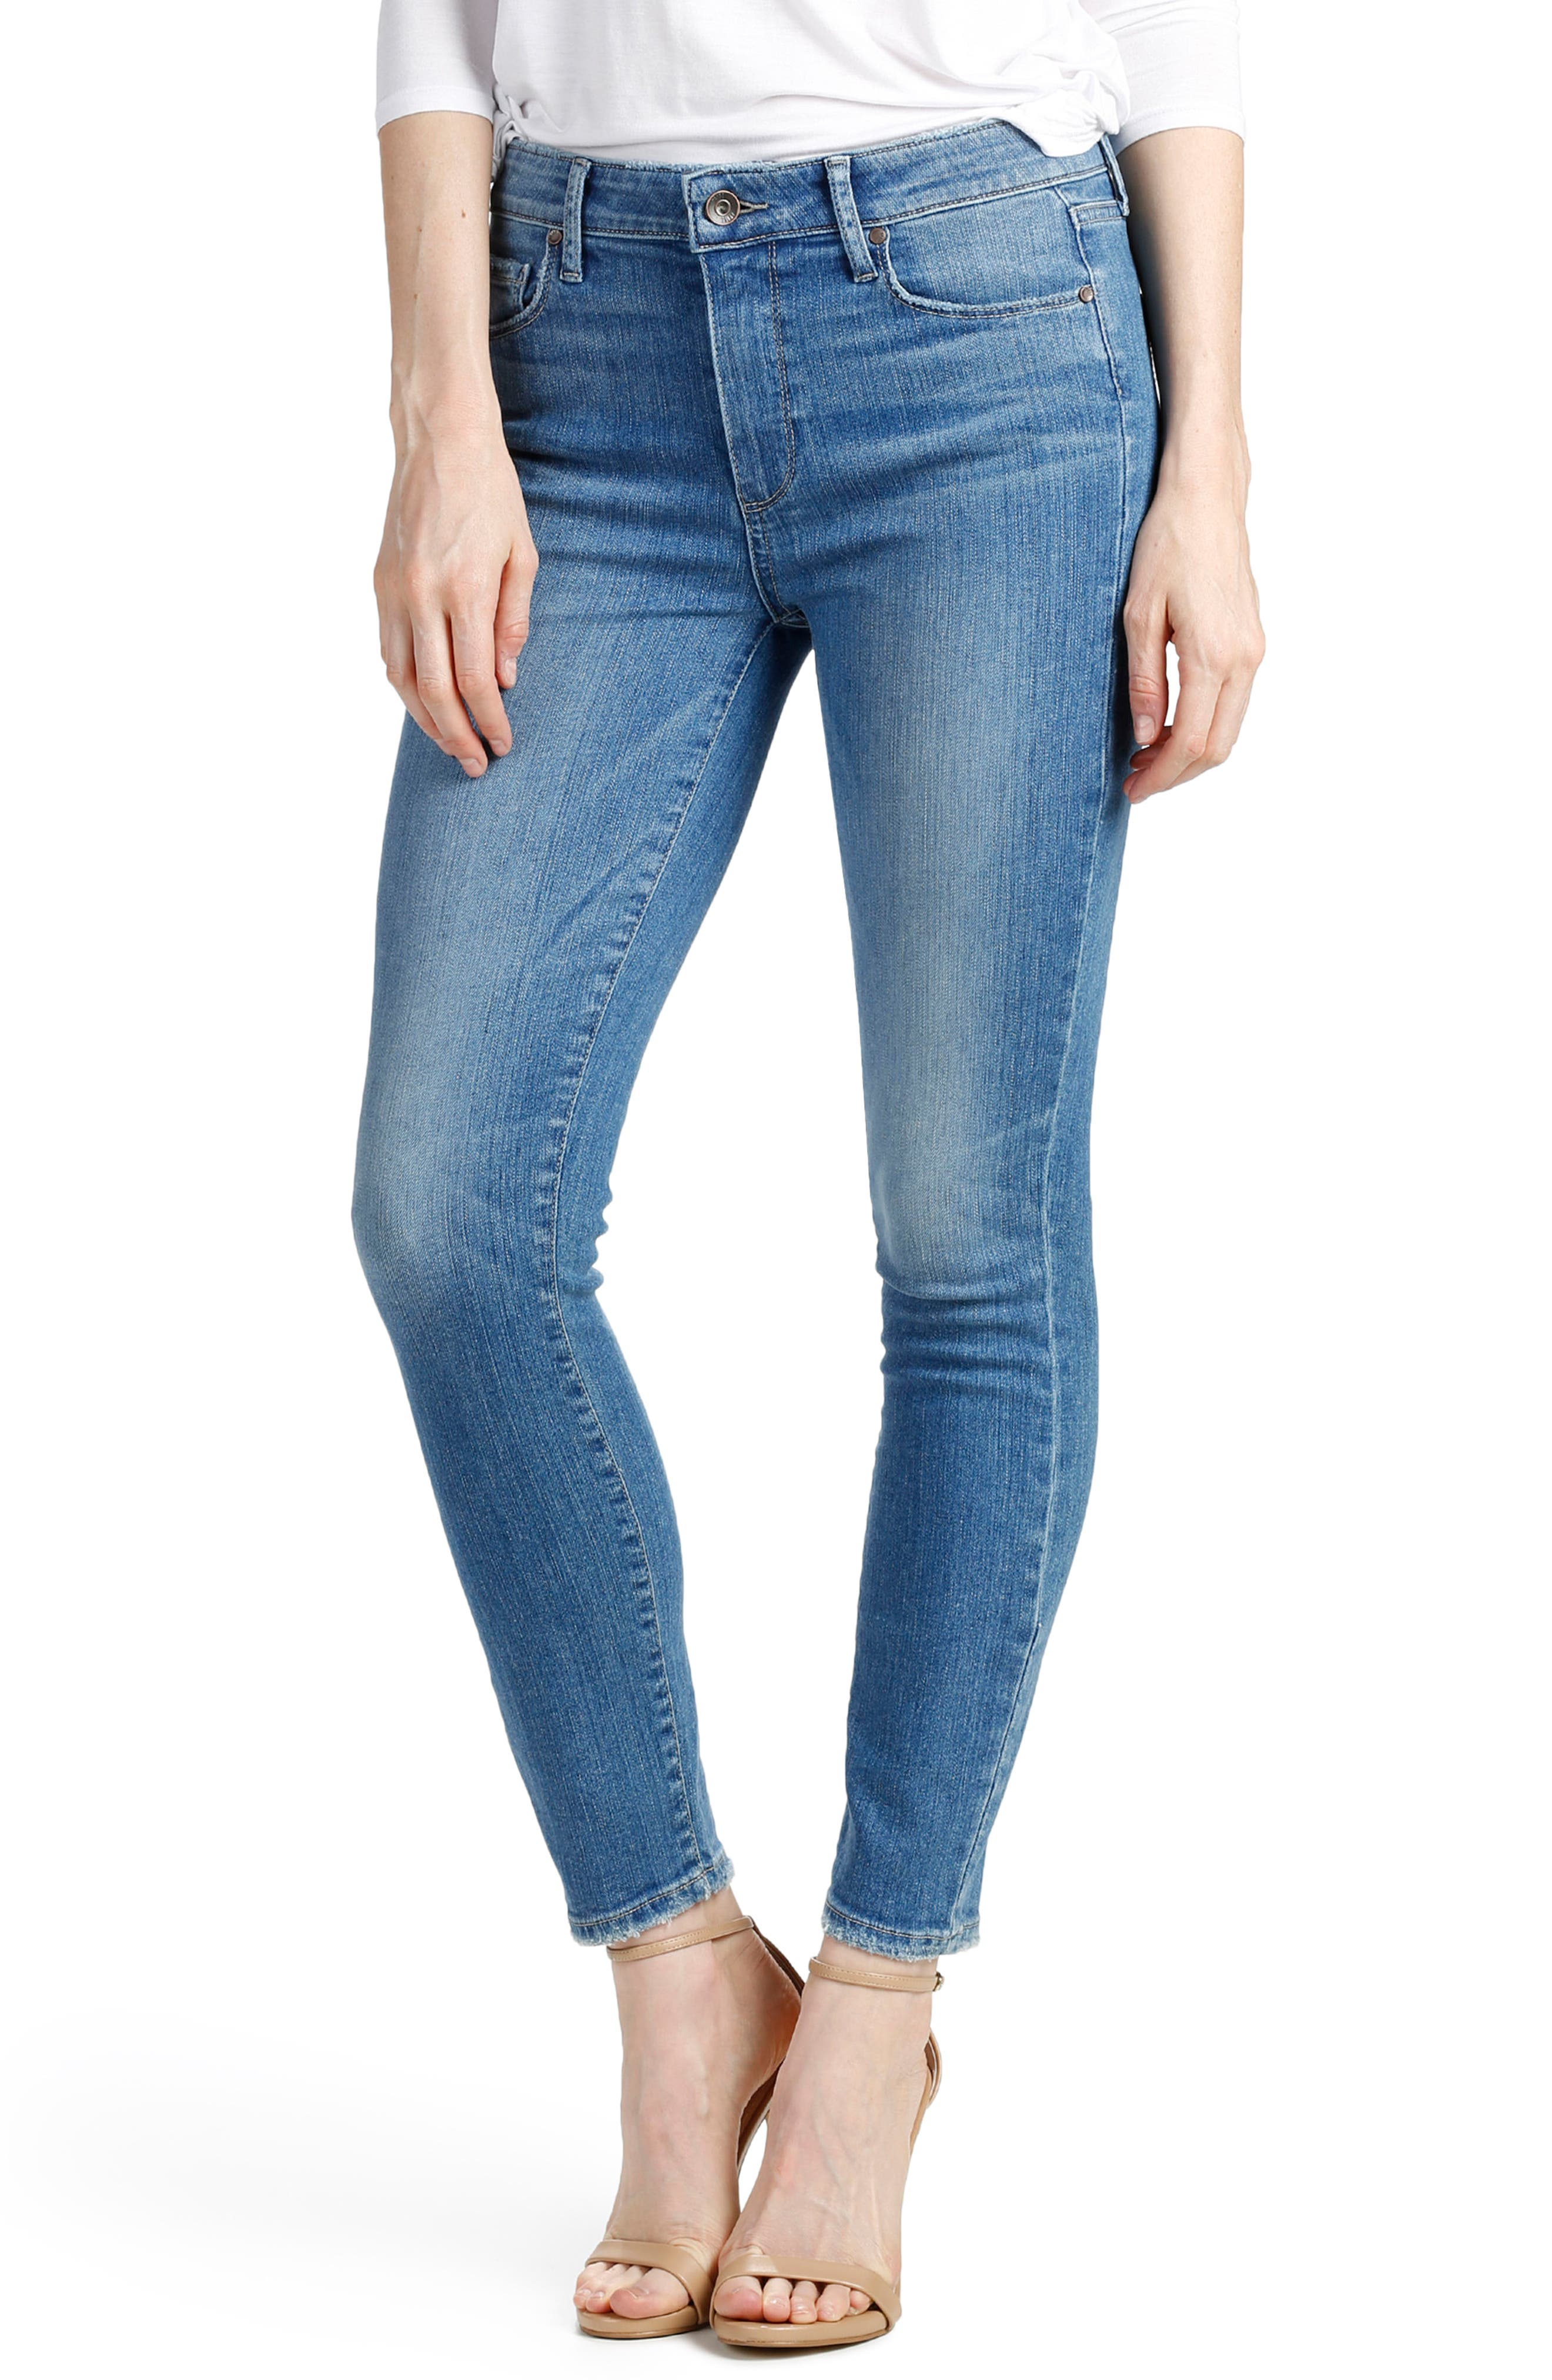 Alternate Image 1 Selected - PAIGE Hoxton High Waist Ankle Skinny Jeans (Evelina)